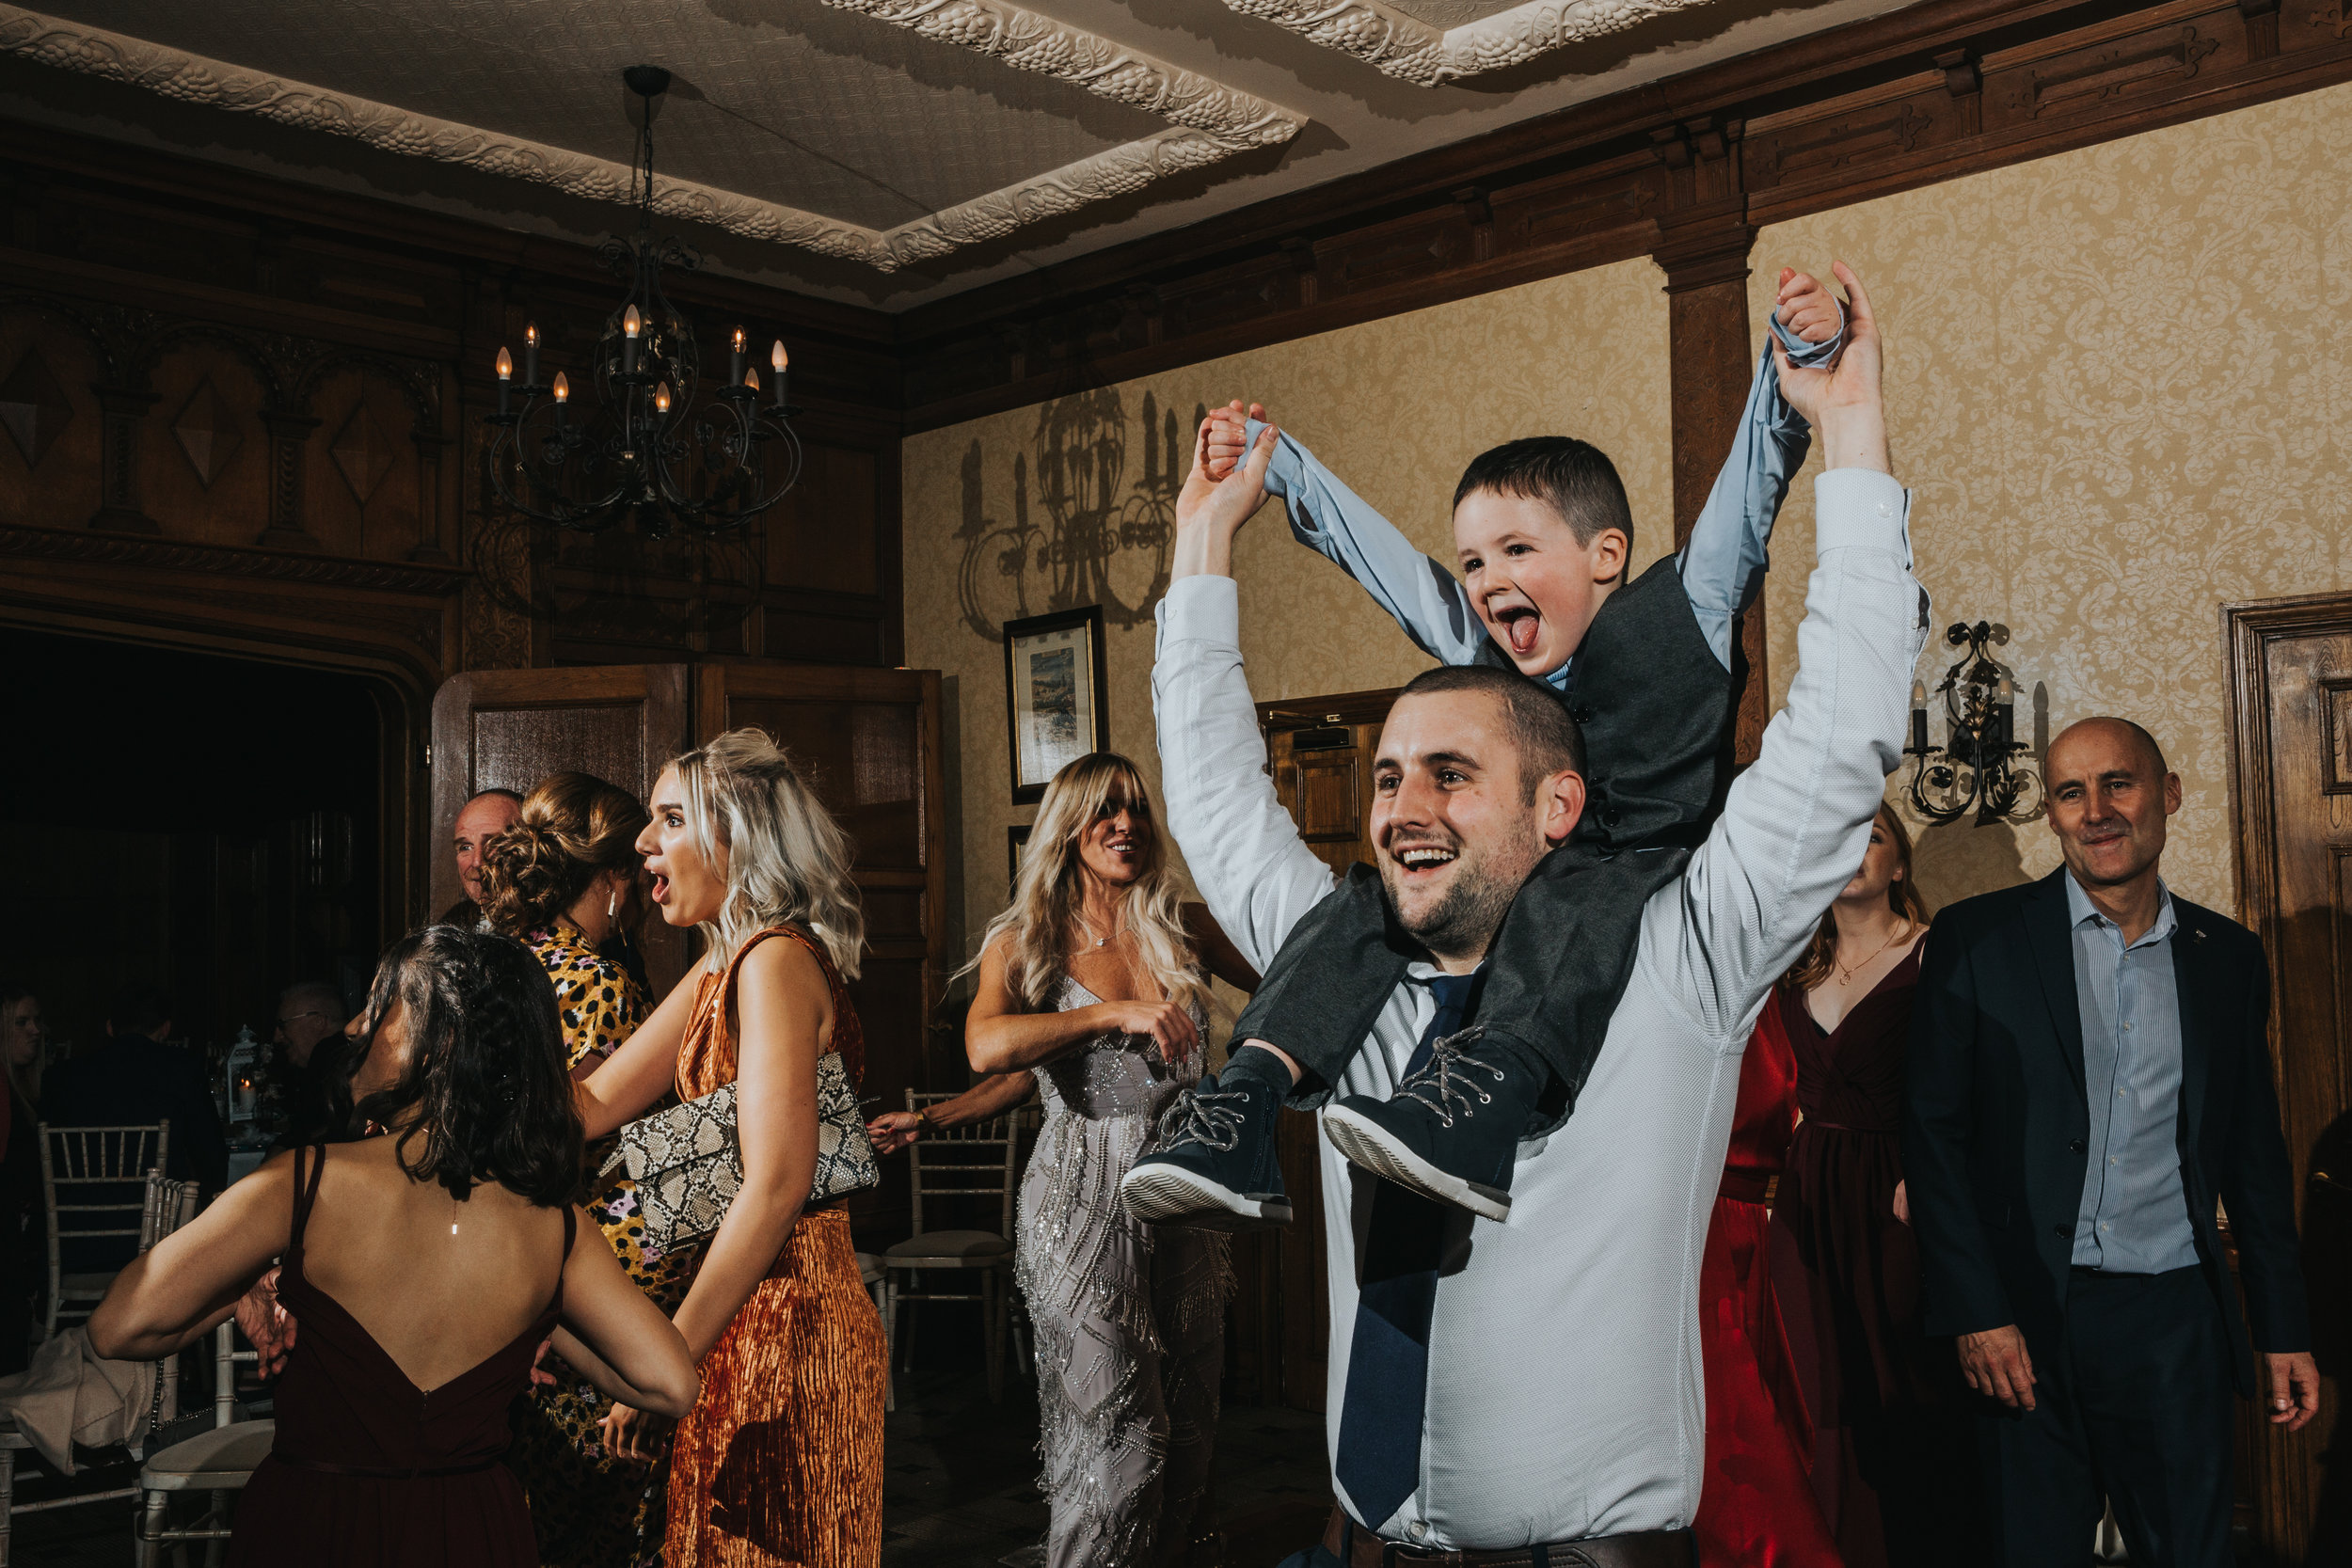 Little boy sits on his dads shoulders cheering as wedding guests dance around them.